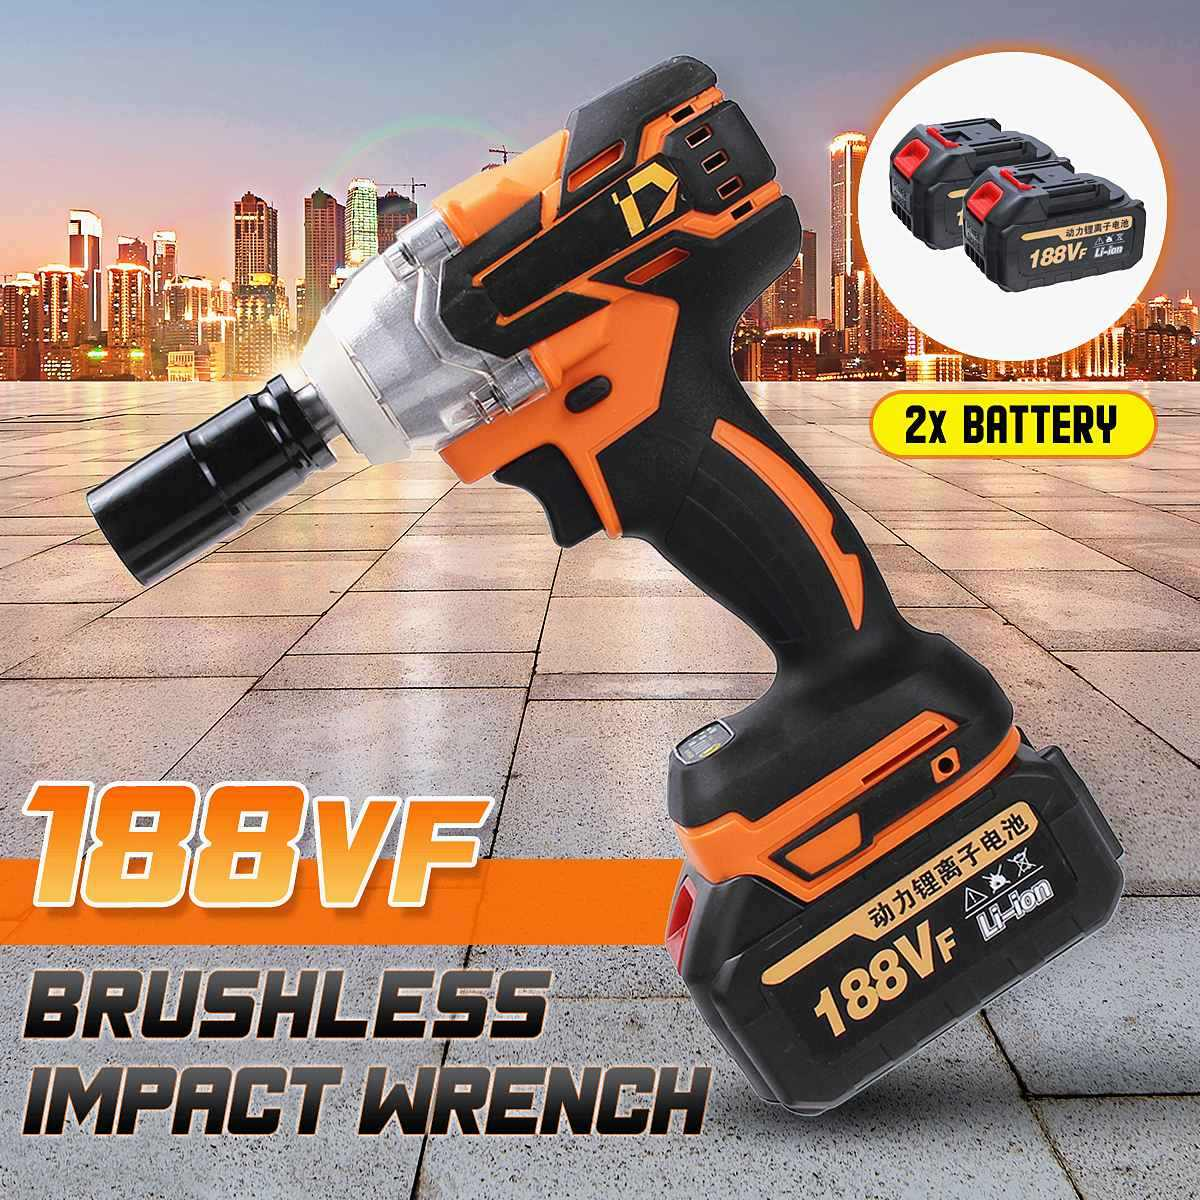 188VF 380N.m Cordless Brushless Electric Wrench Impact Socket 2X15000mAh Li Battery Hand Drill Installation  Tools 100-240V